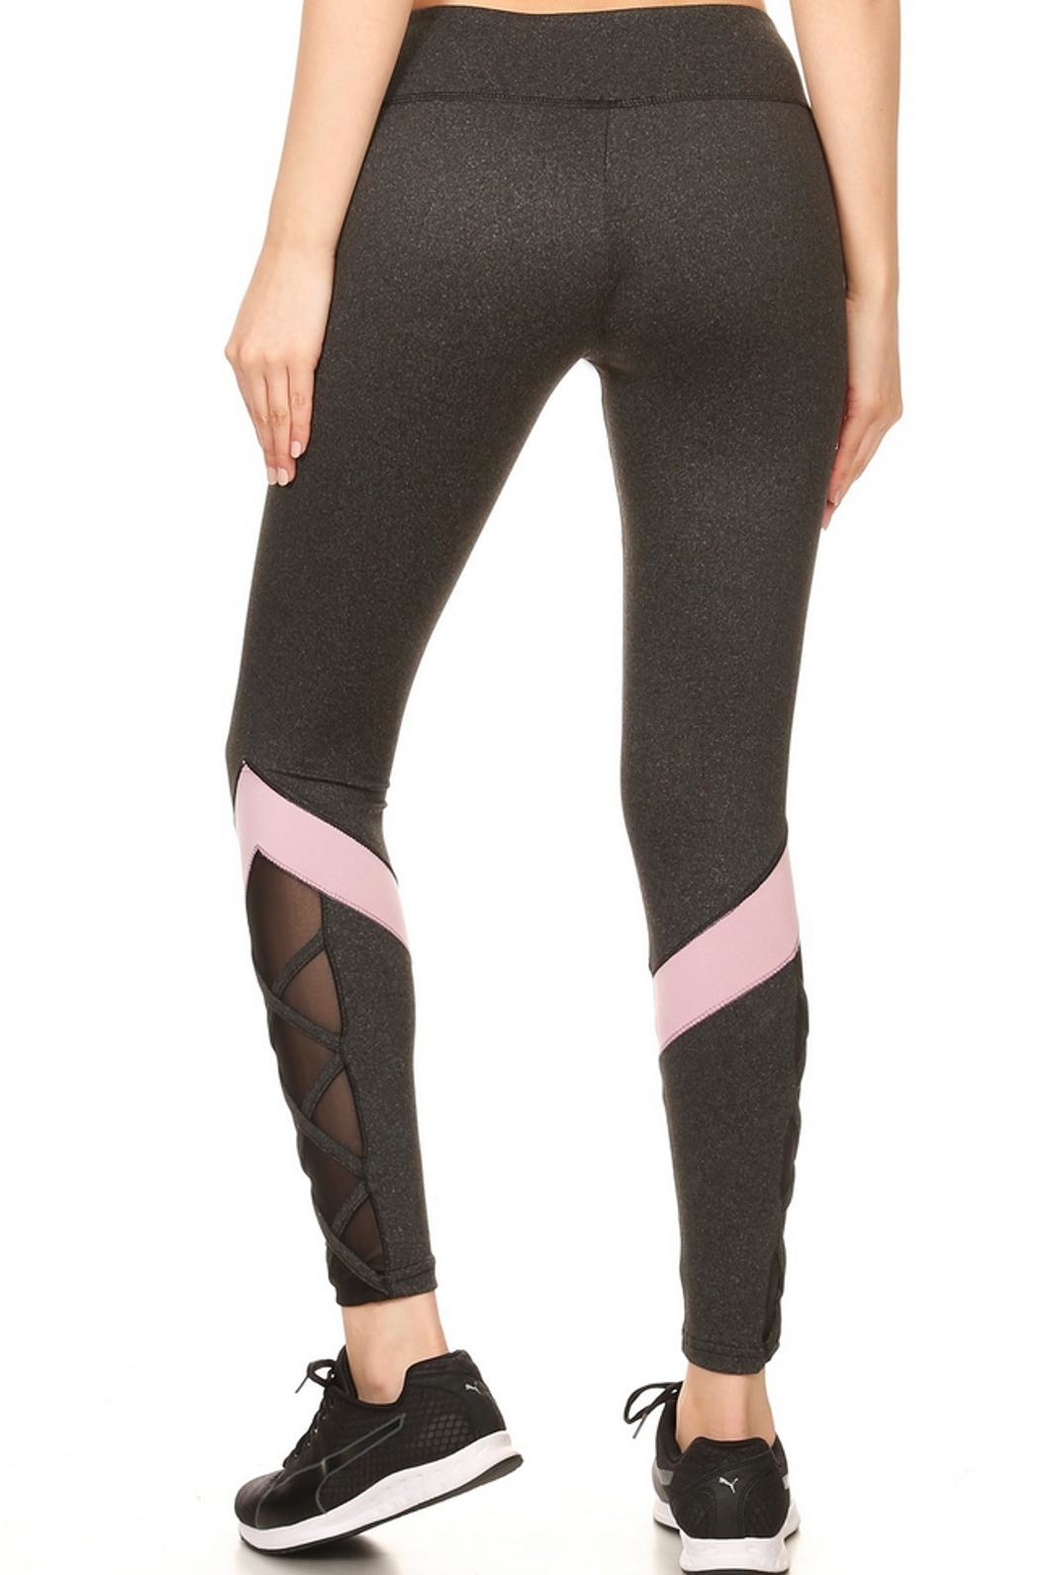 CHANDLEY Activewear Leggings - Side Cropped Image